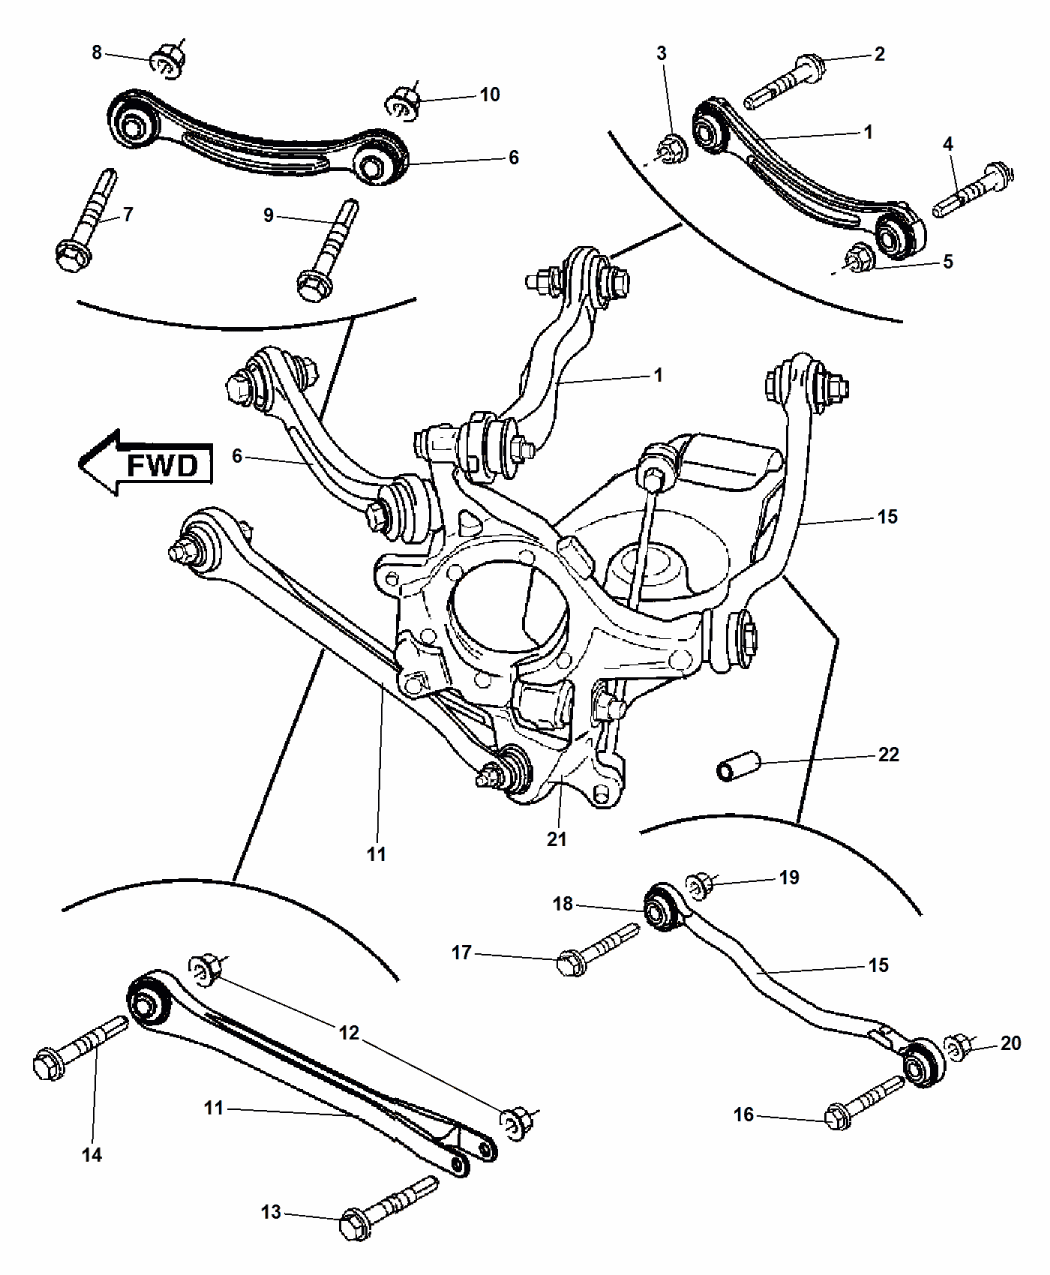 Mh 8487 2008 Dodge Charger Front Suspension Diagram Schematic Wiring